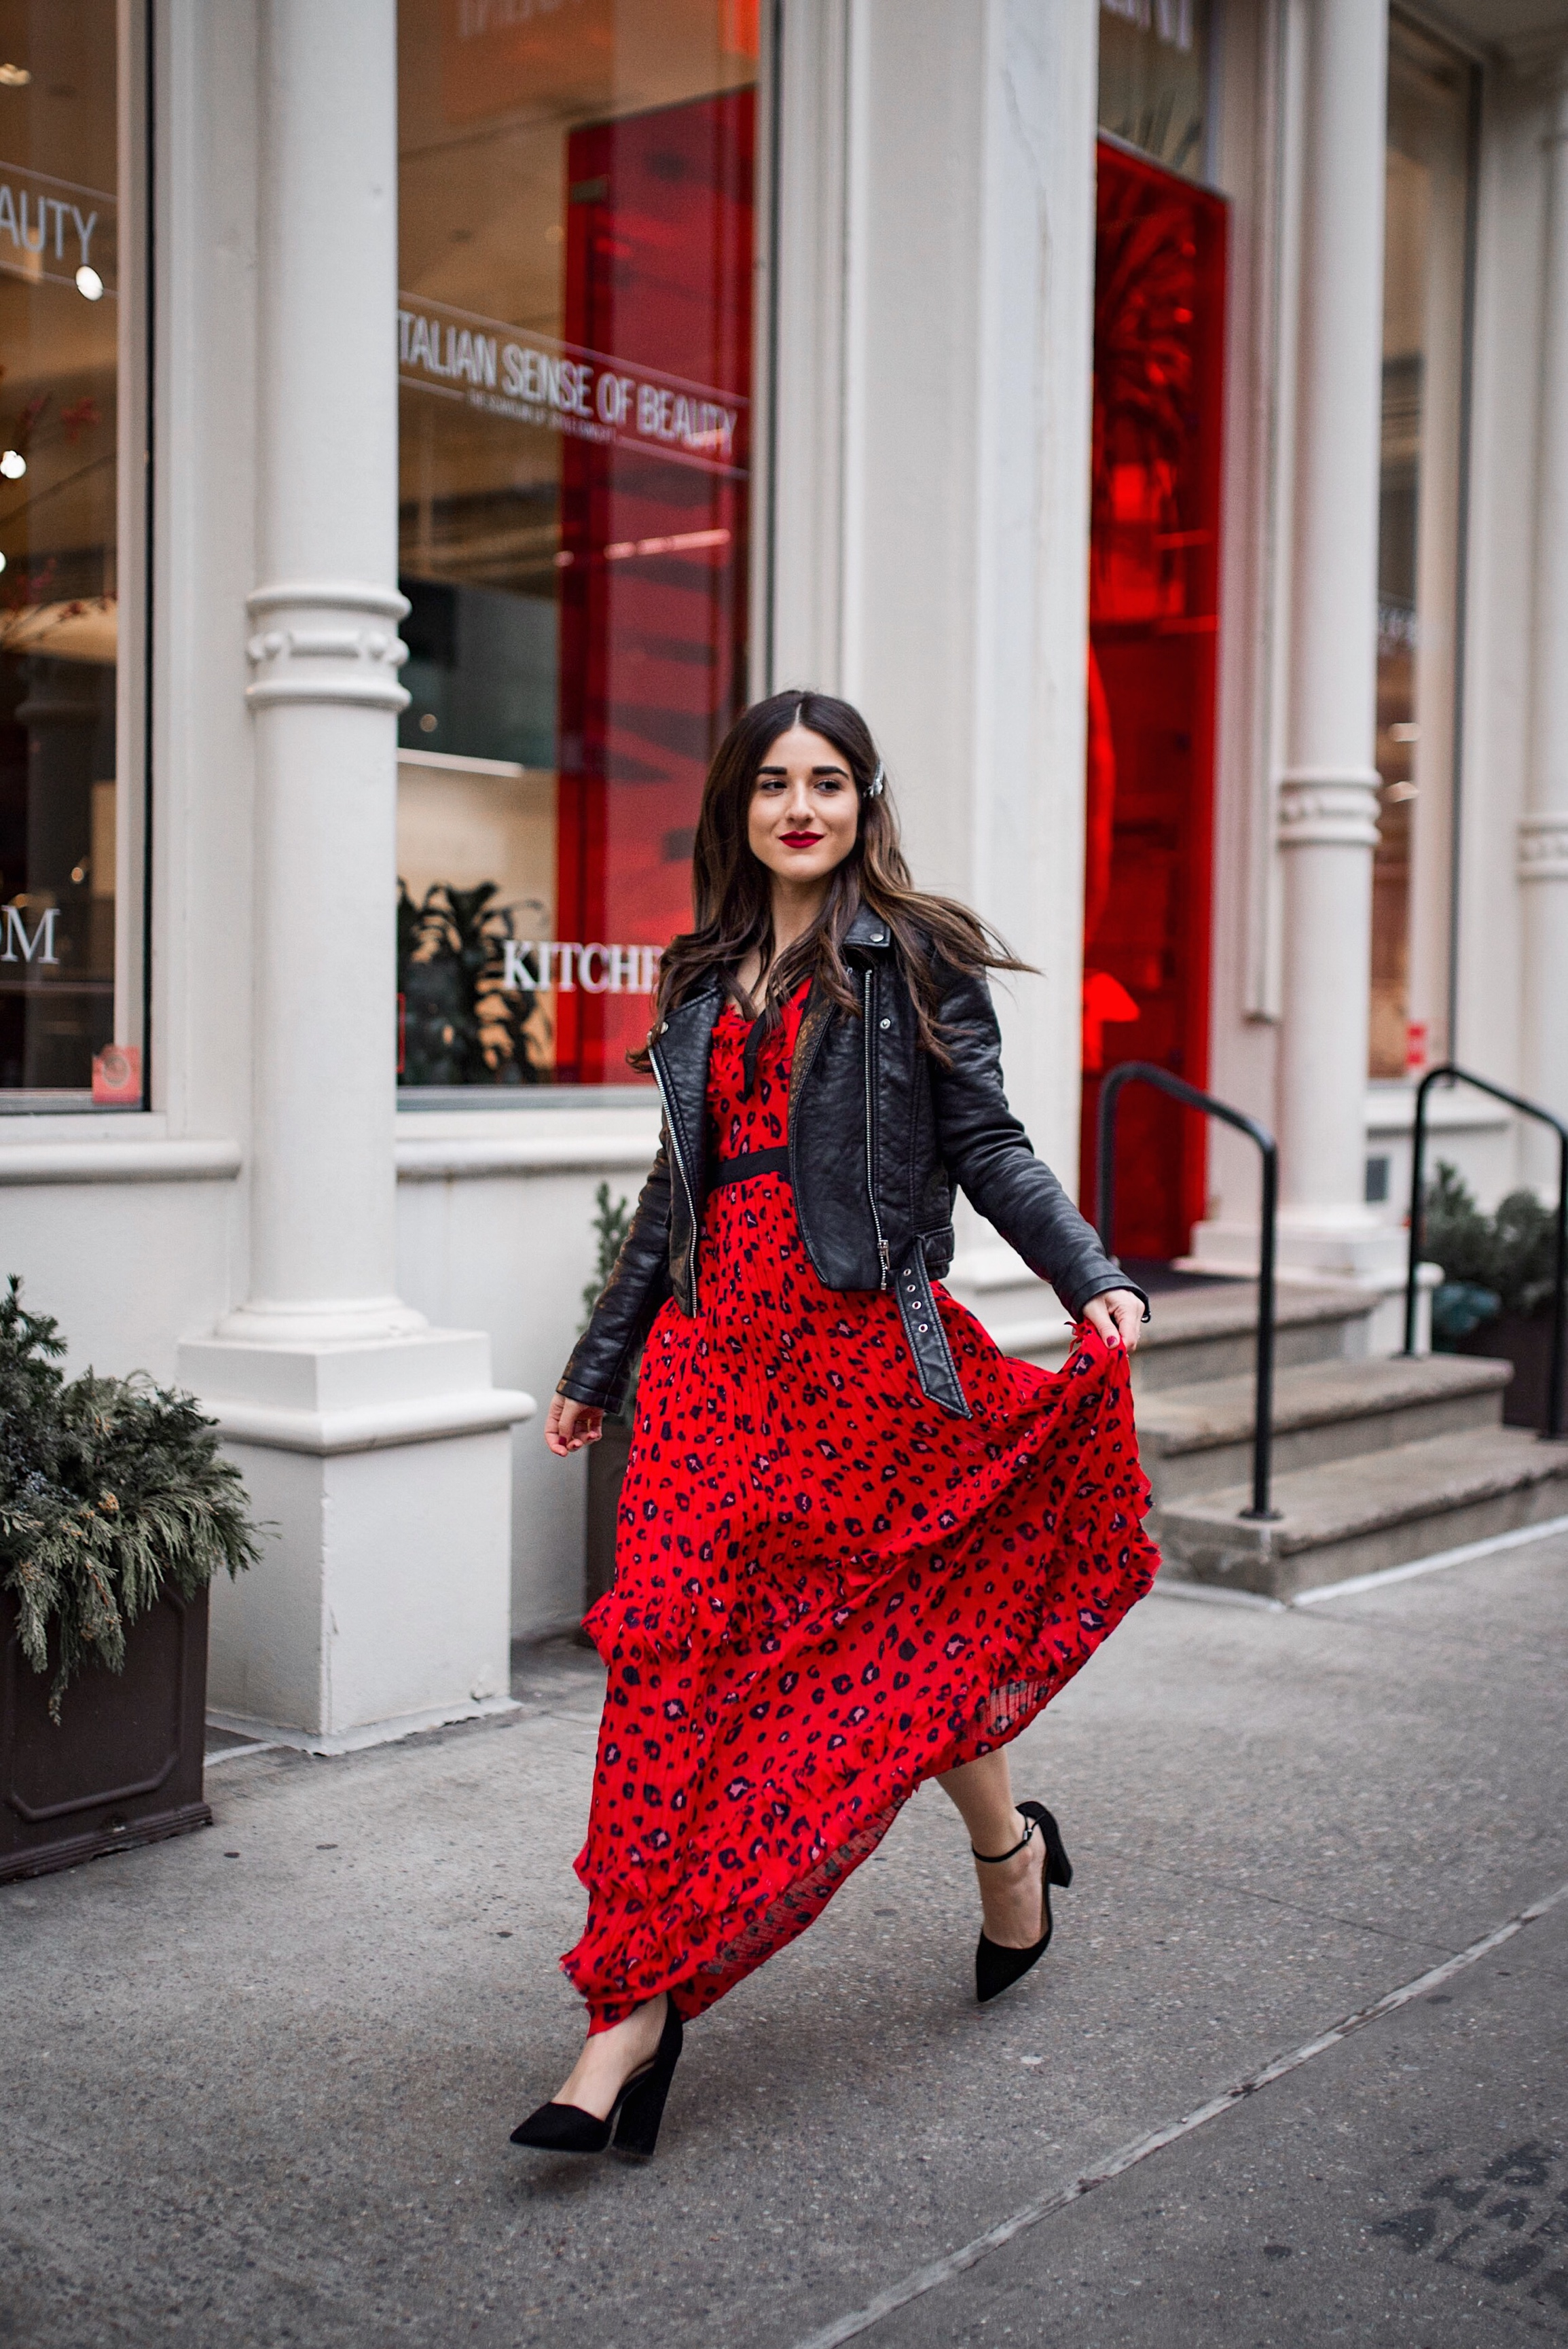 290e940cebd Why Do We Do Any Of This? // Red Leopard Dress + Moto Jacket ...